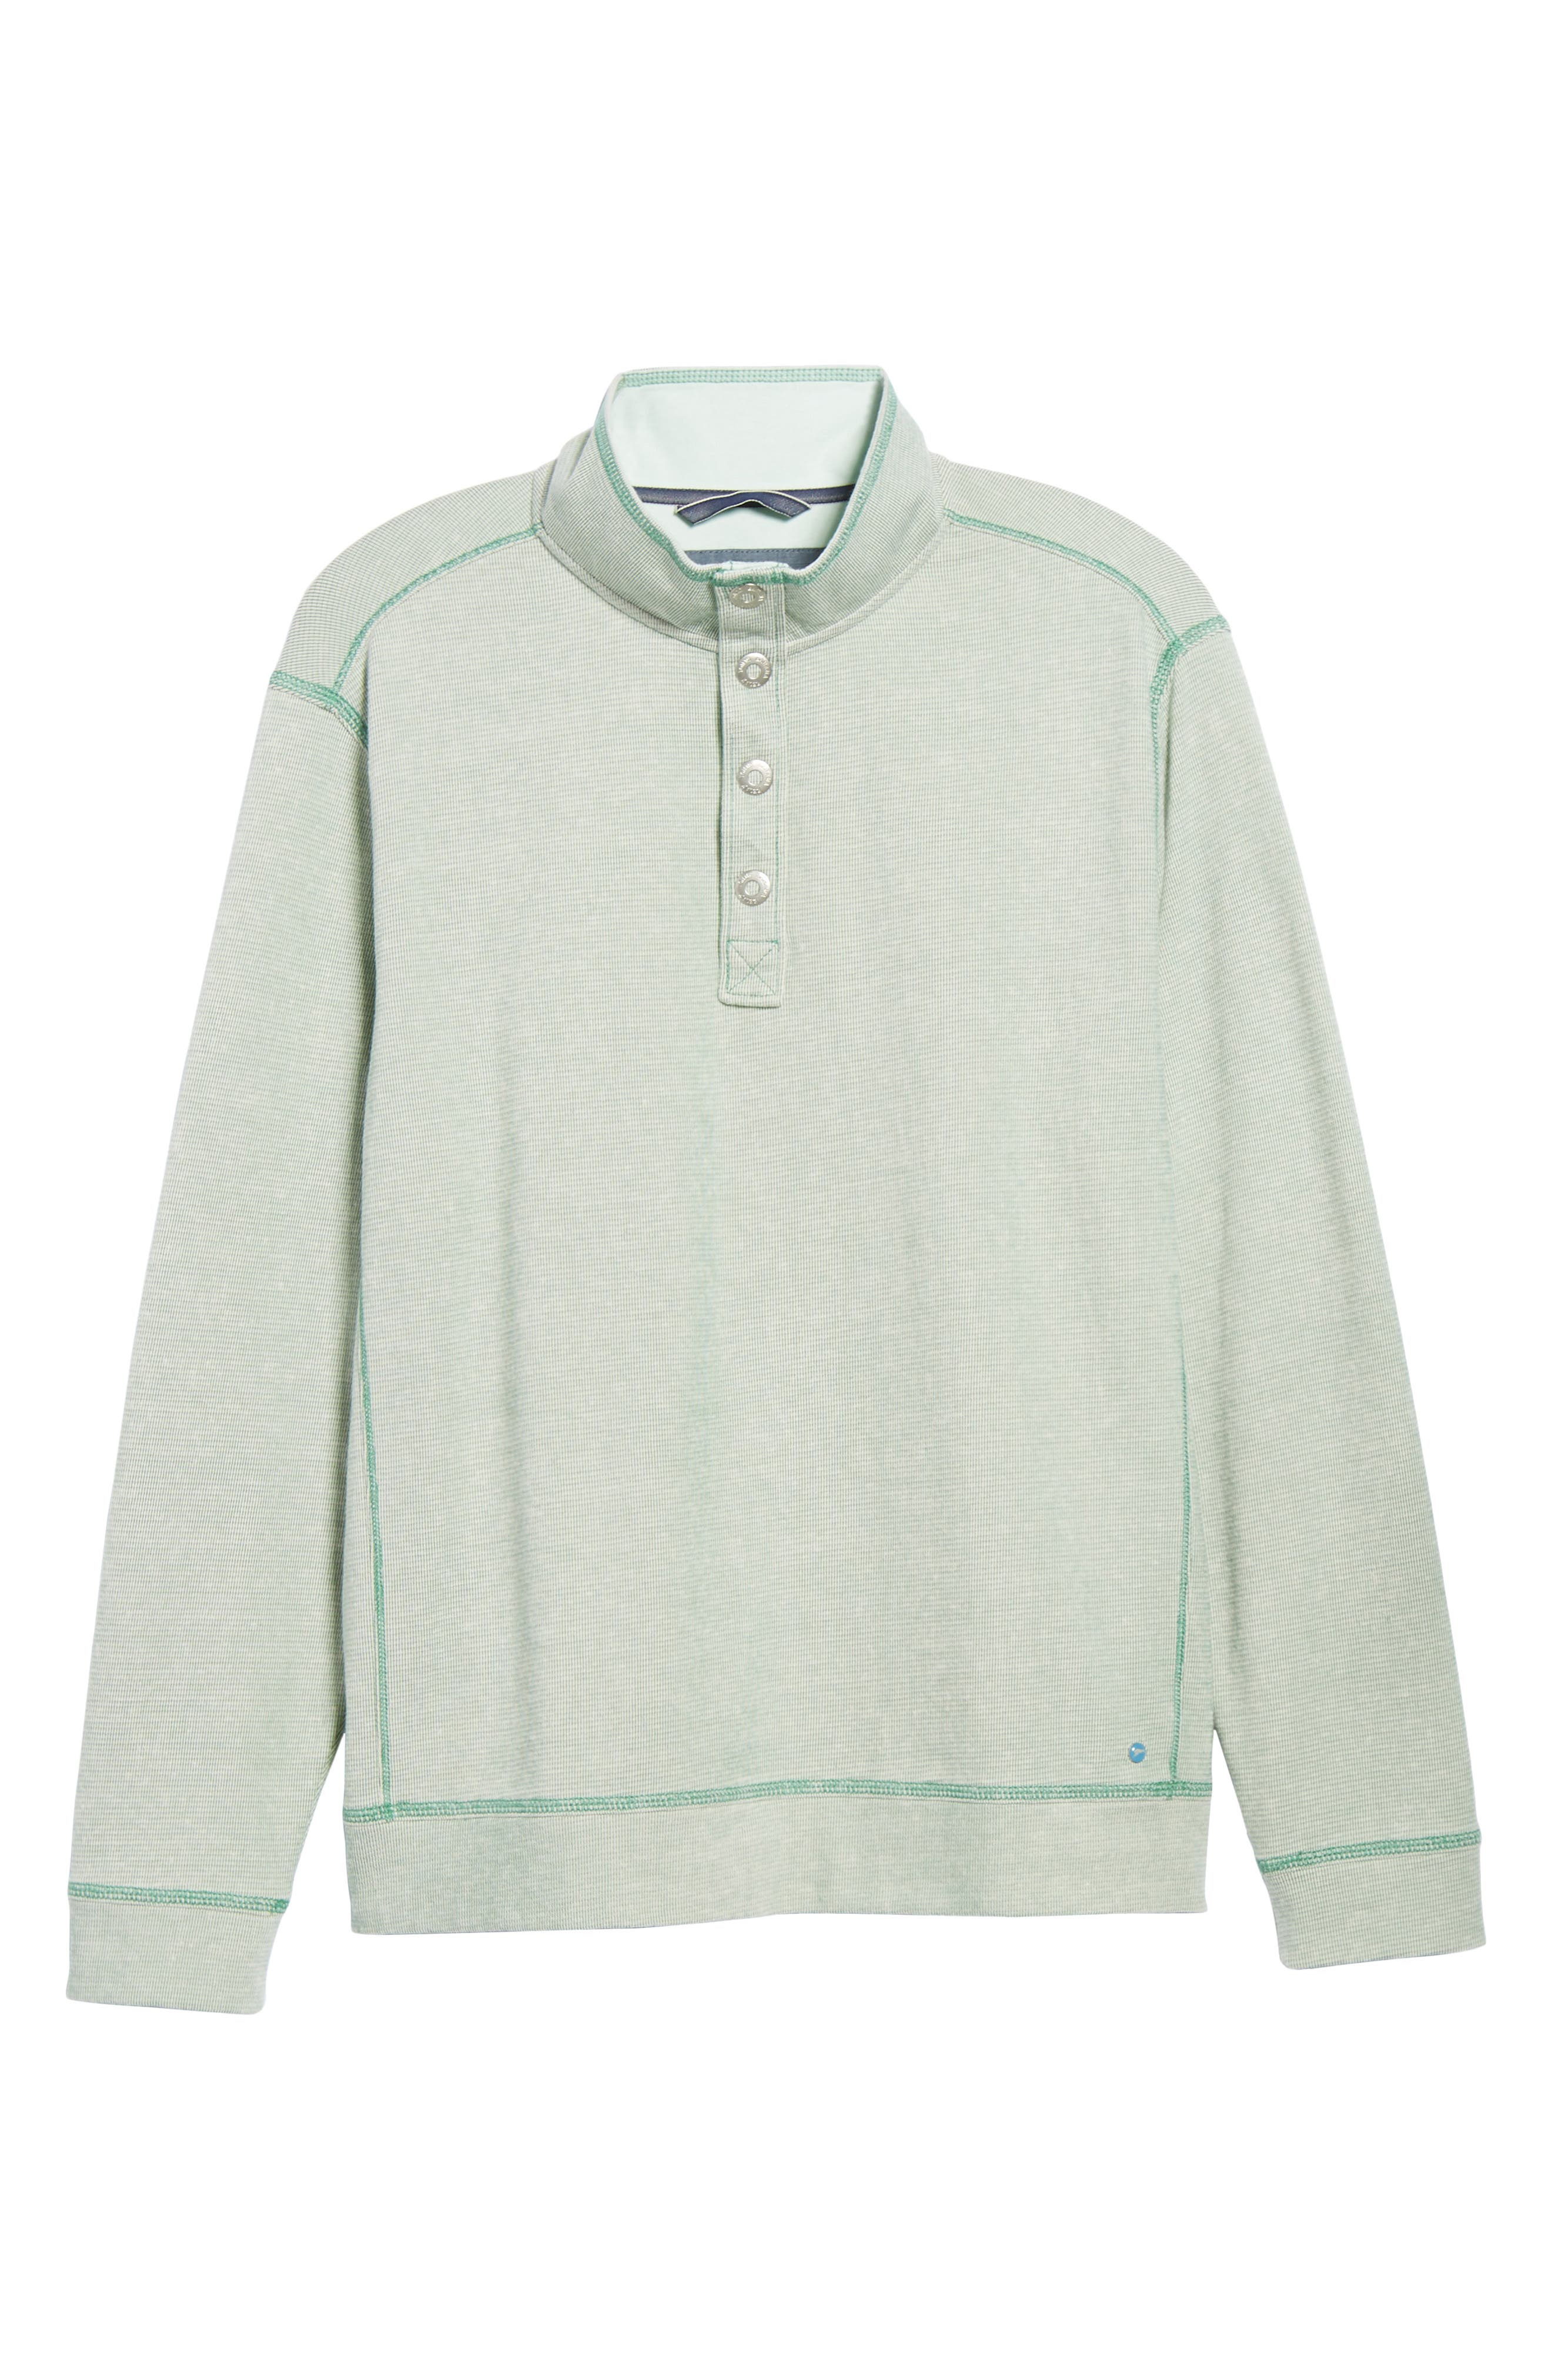 Alternate Image 1 Selected - Tommy Bahama Ocean Mist Quarter-Snap Pullover